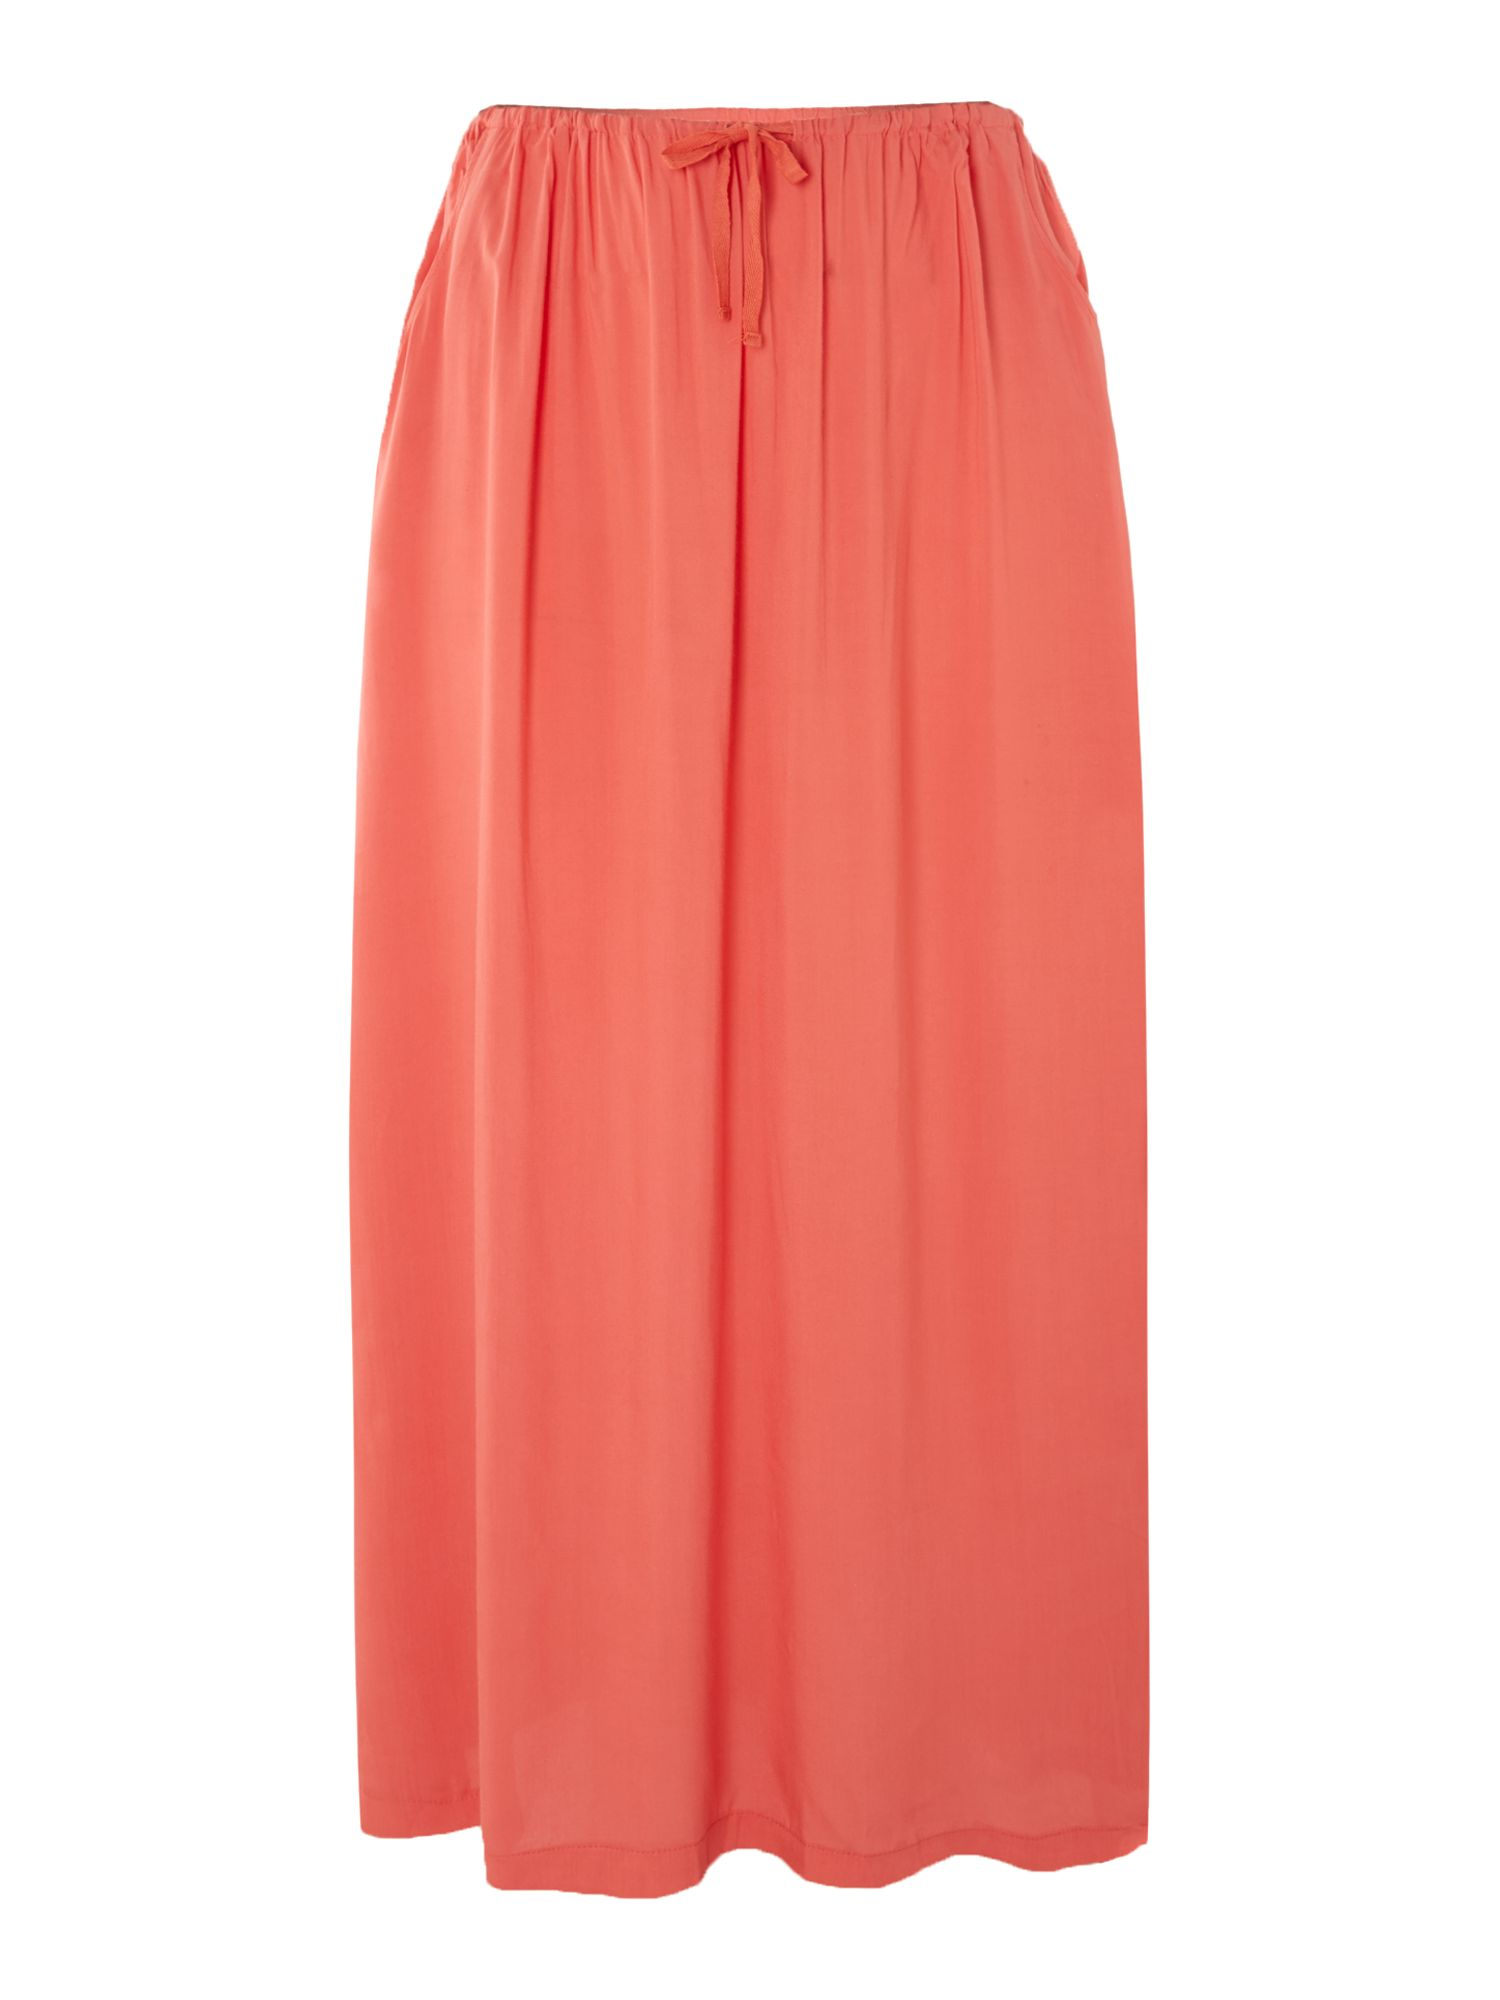 Chiffon maxi skirt with side tie